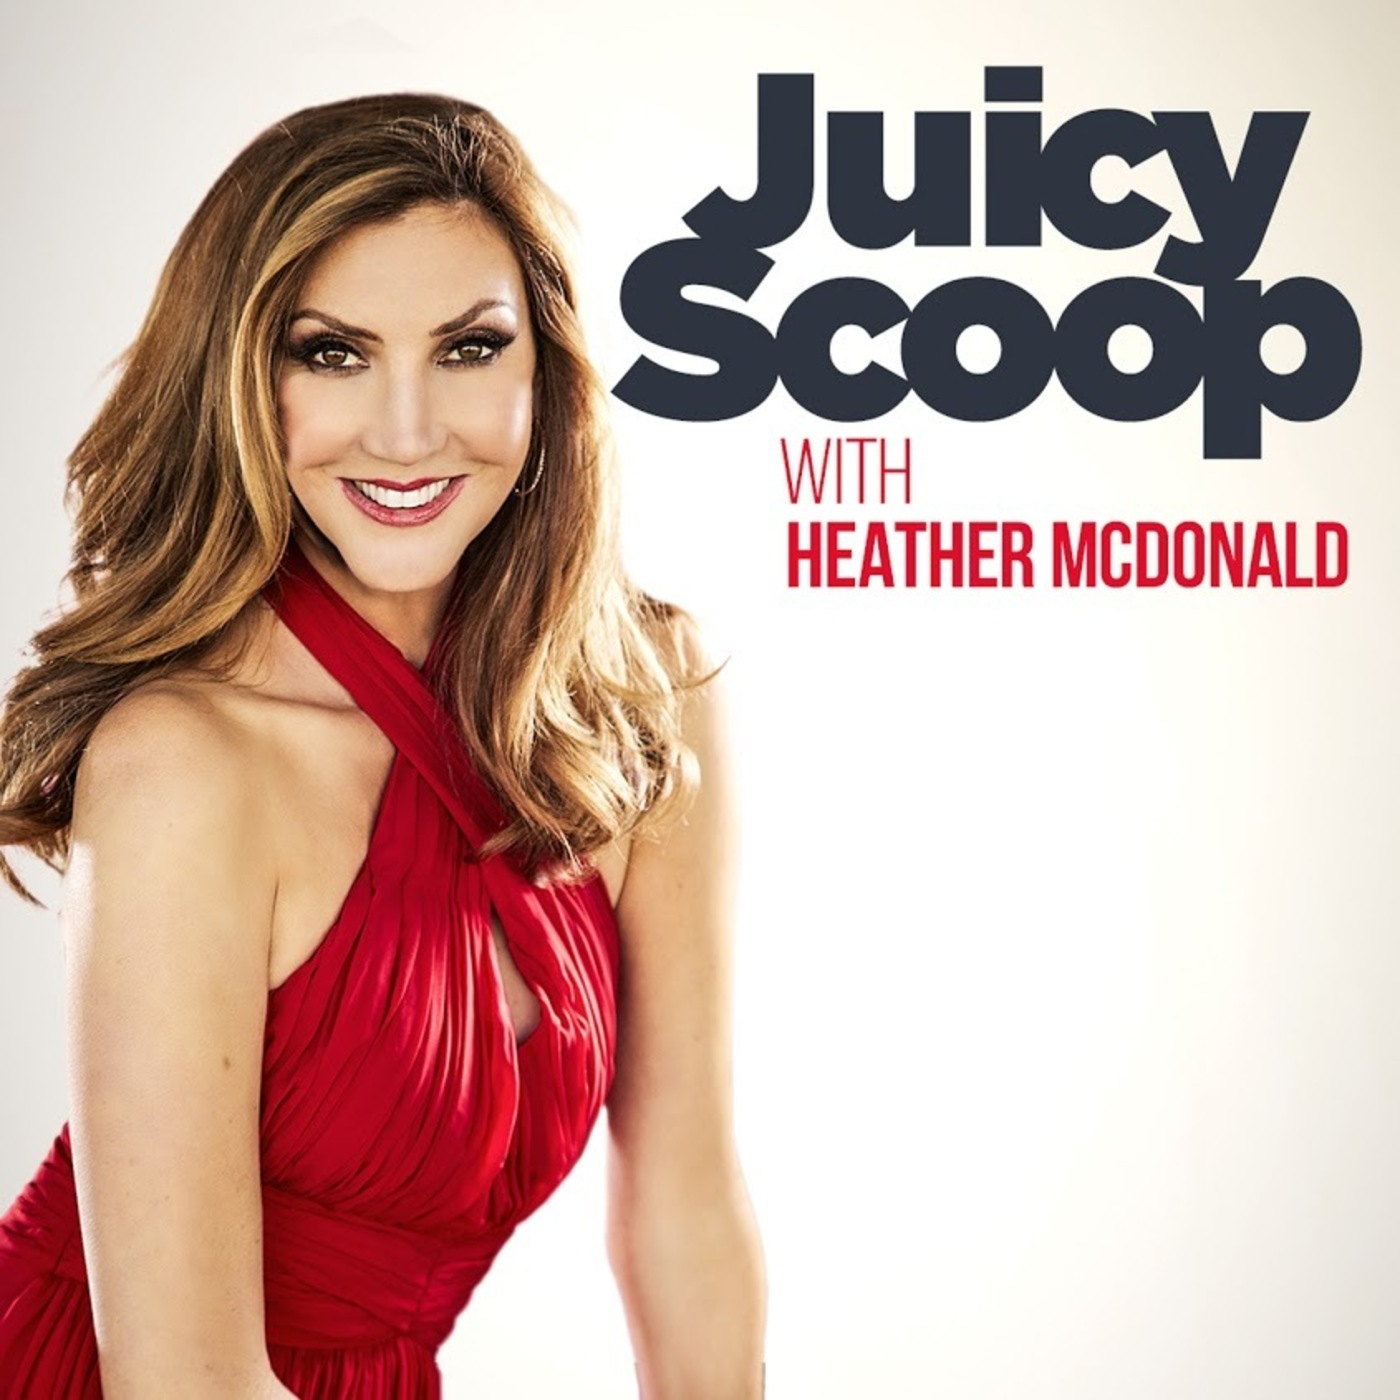 Juicy Scoop with Heather McDonald